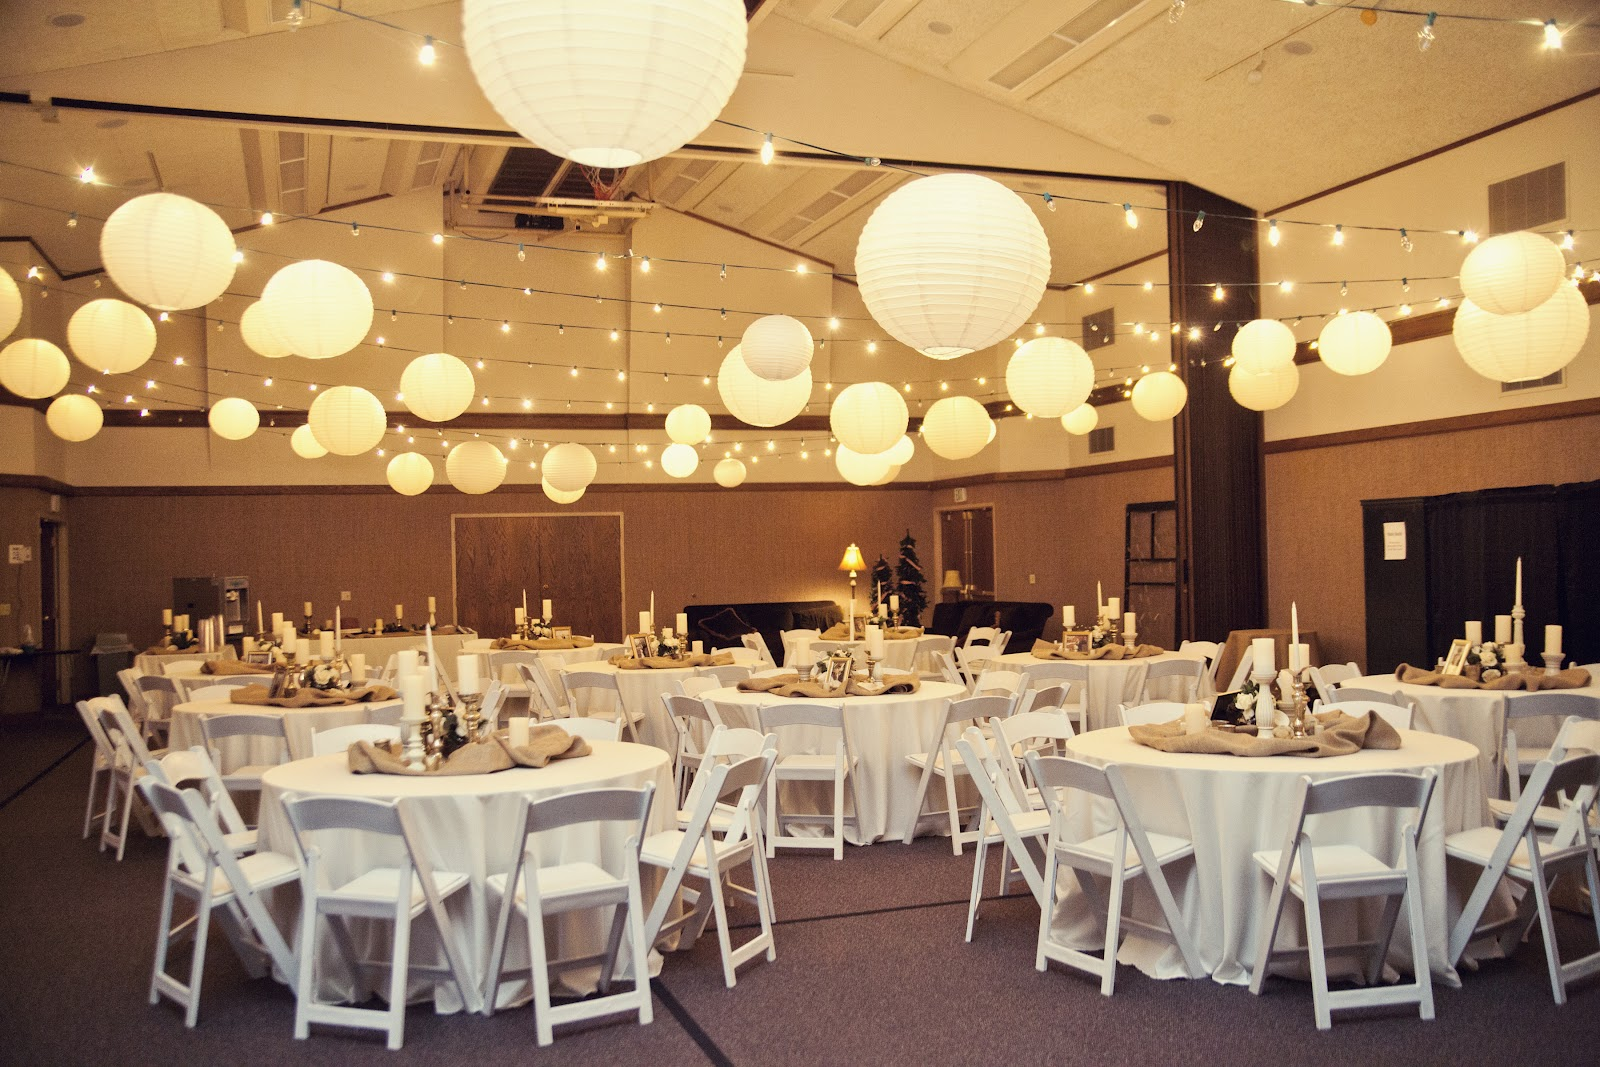 Beehive art salon wedding for Wedding hall decoration items